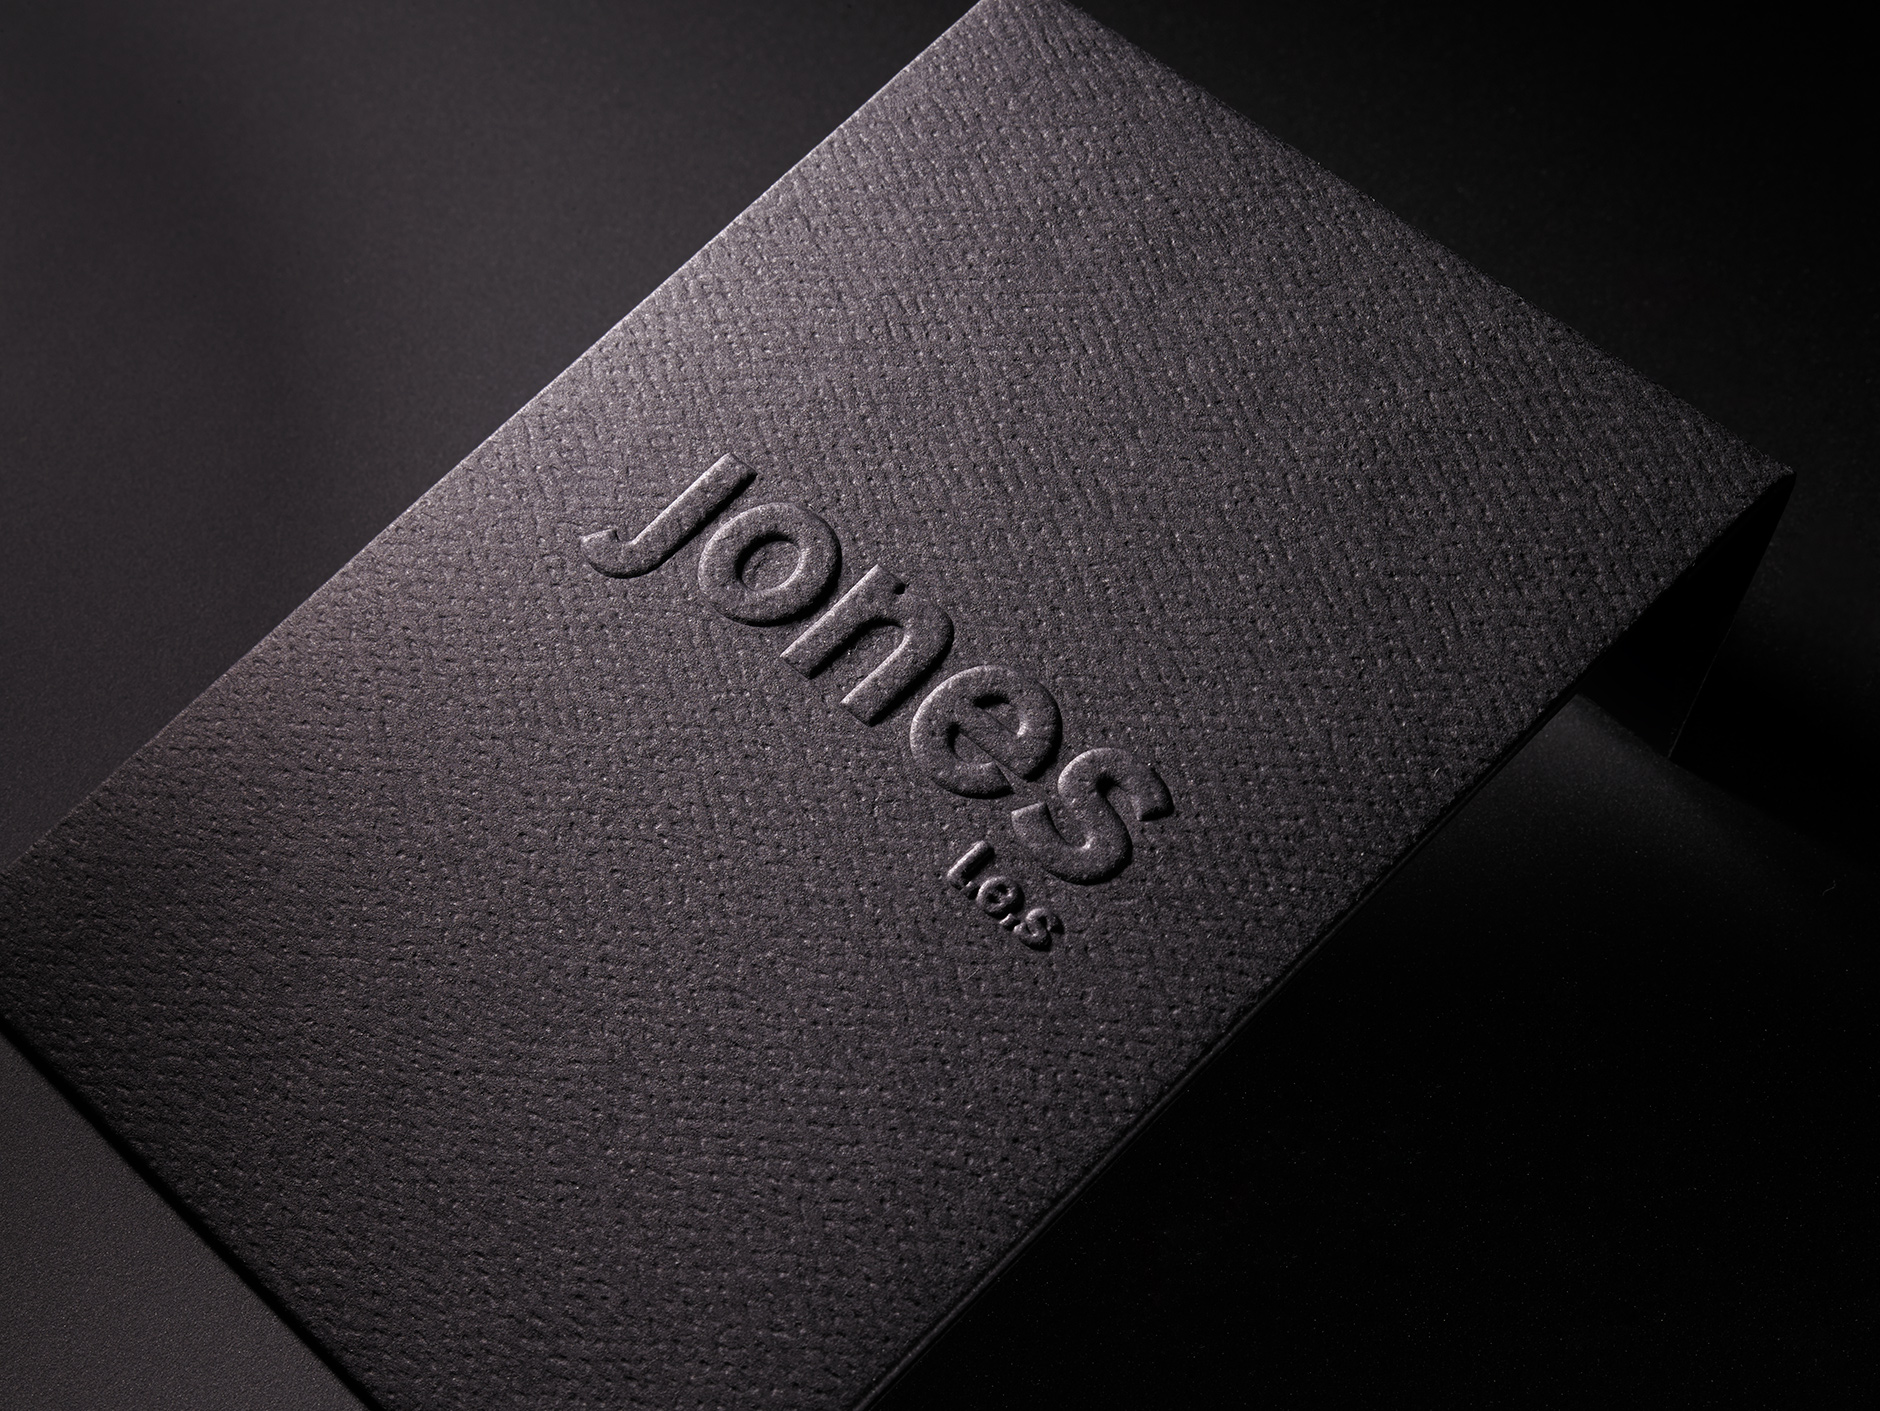 Jones L.E.S. Blind-embossed Envelope   A luxury residence on the lower eastside of Manhattan, Jones L.E.S. needed an envelope to help express their brand. The solid black textured envelope was blind-embossed with a peel and seal strip on the inside of the flap. It was custom diecut to house a mounted promotional notecard with a color image of a peacock & model on the backside of the card.